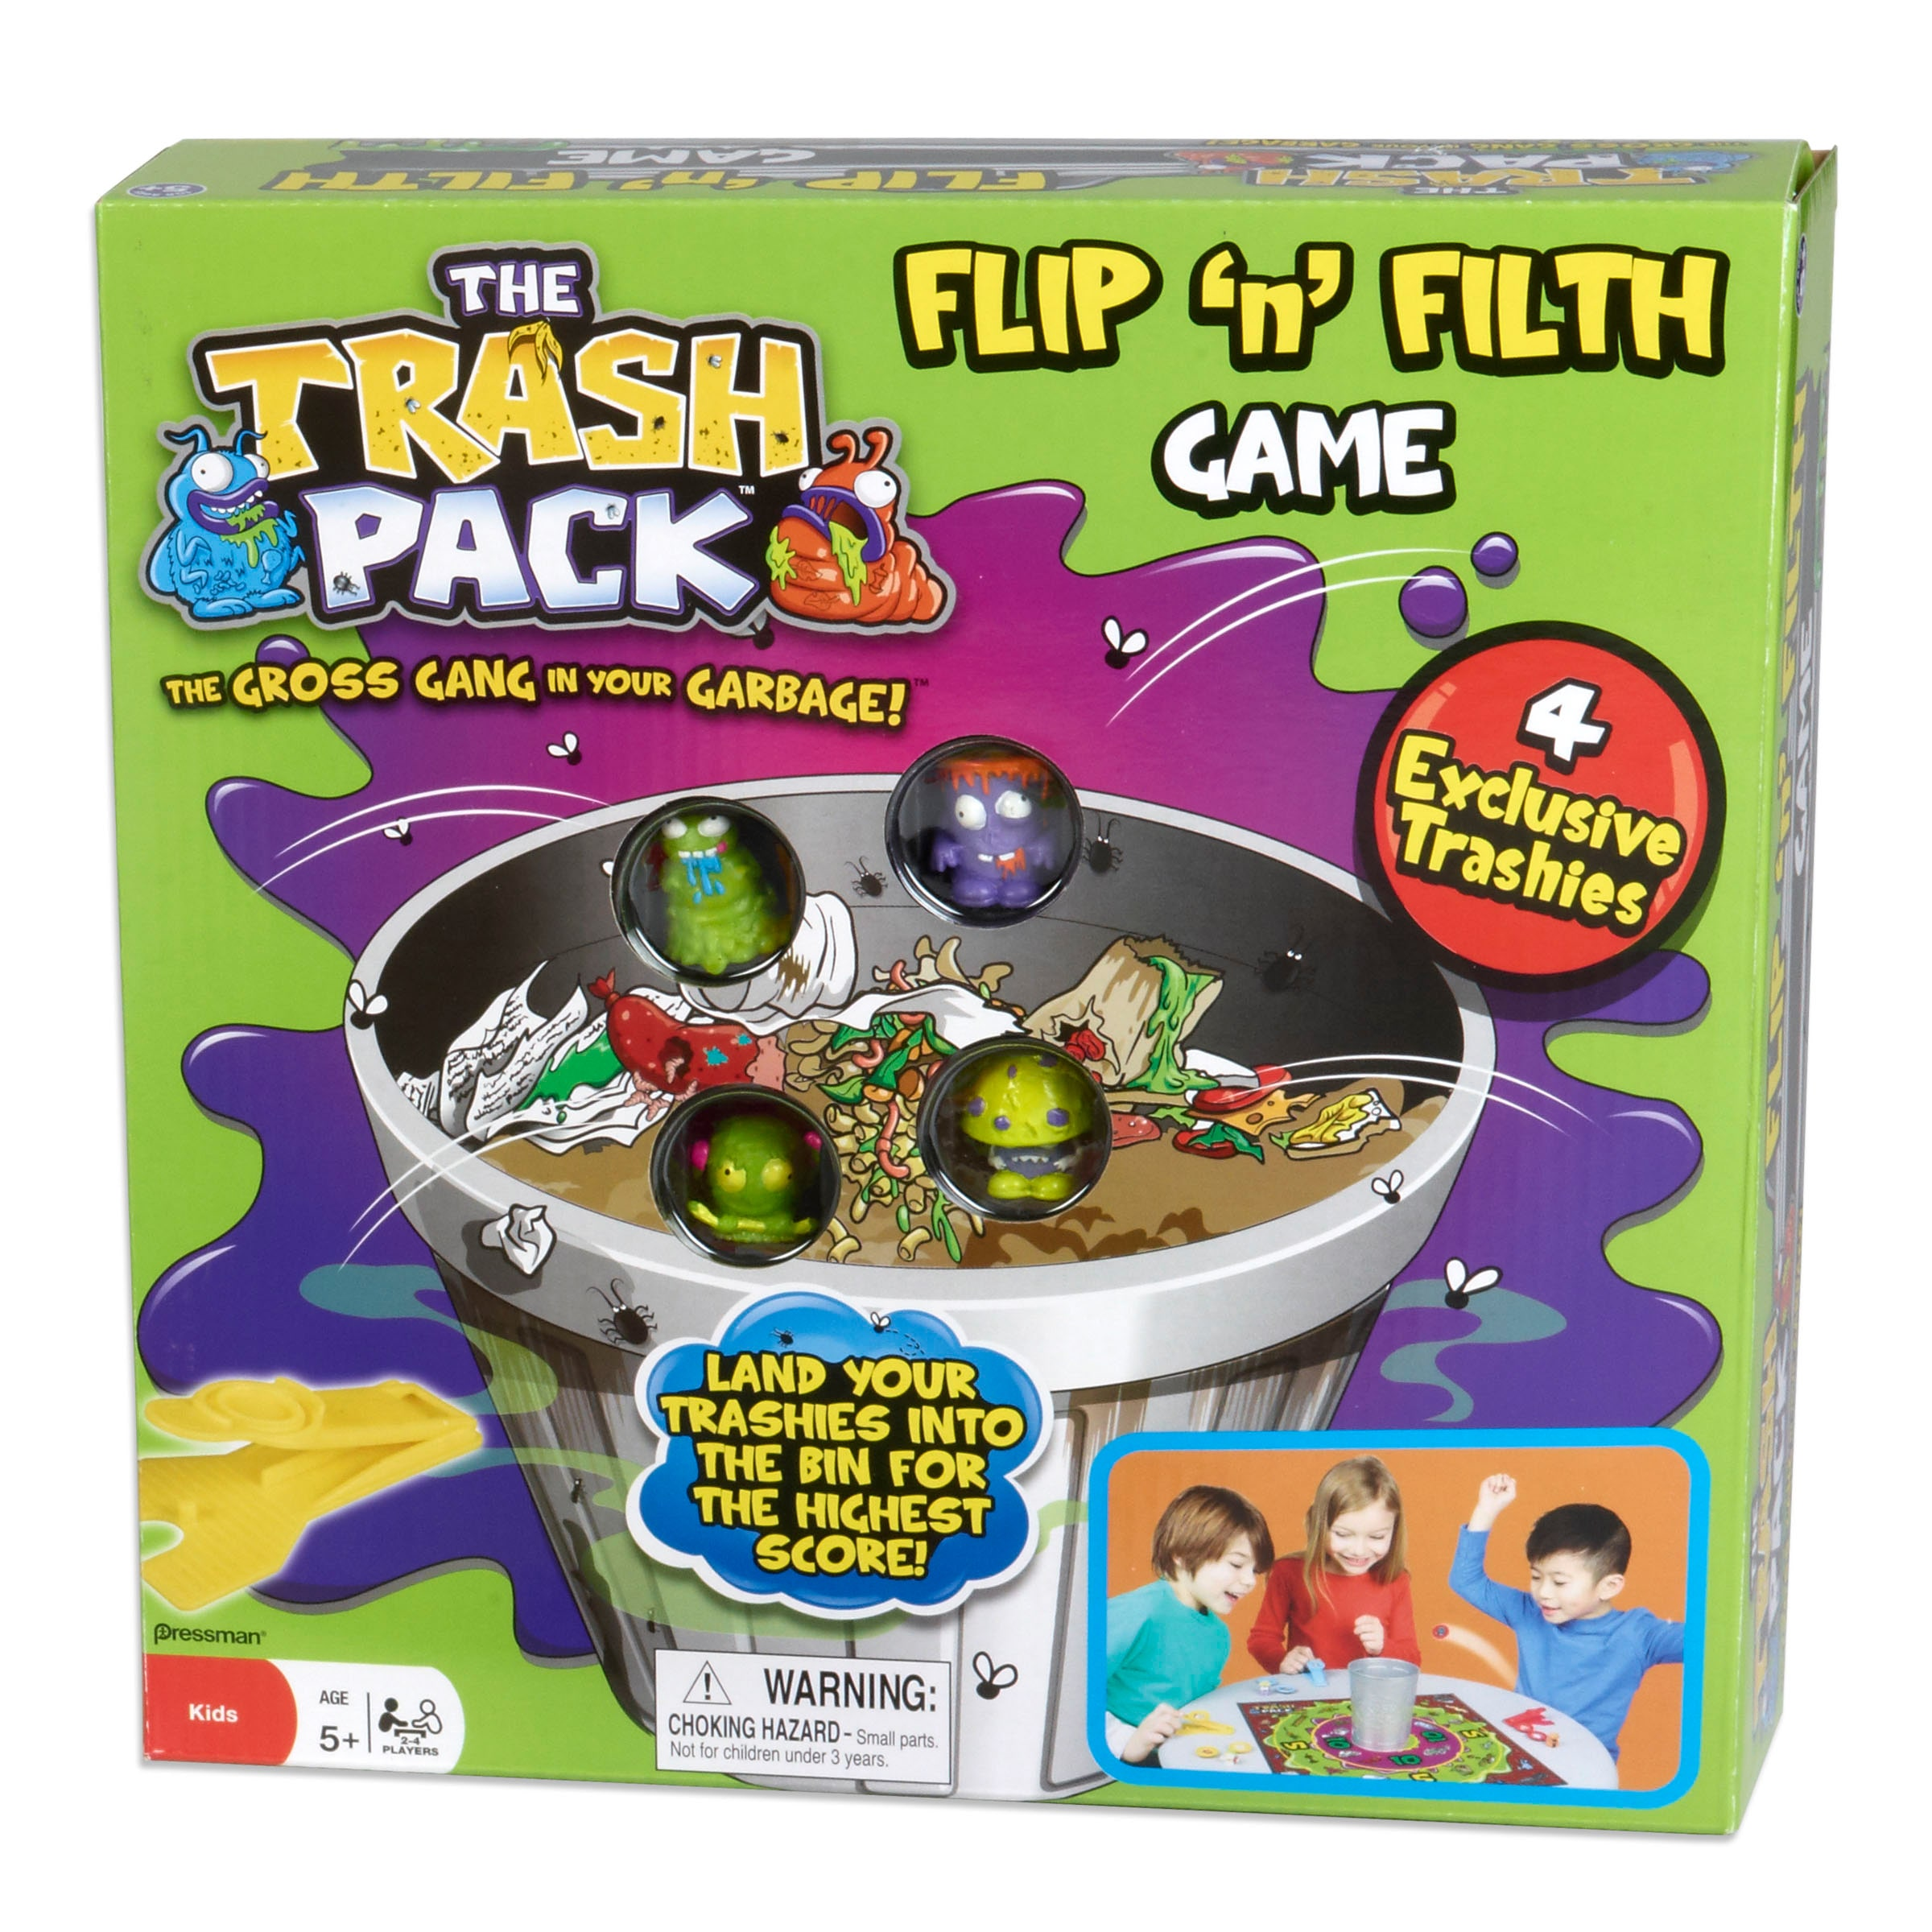 Pressman Toy The Trash Pack Flip 'N' Filth Game by Overstock